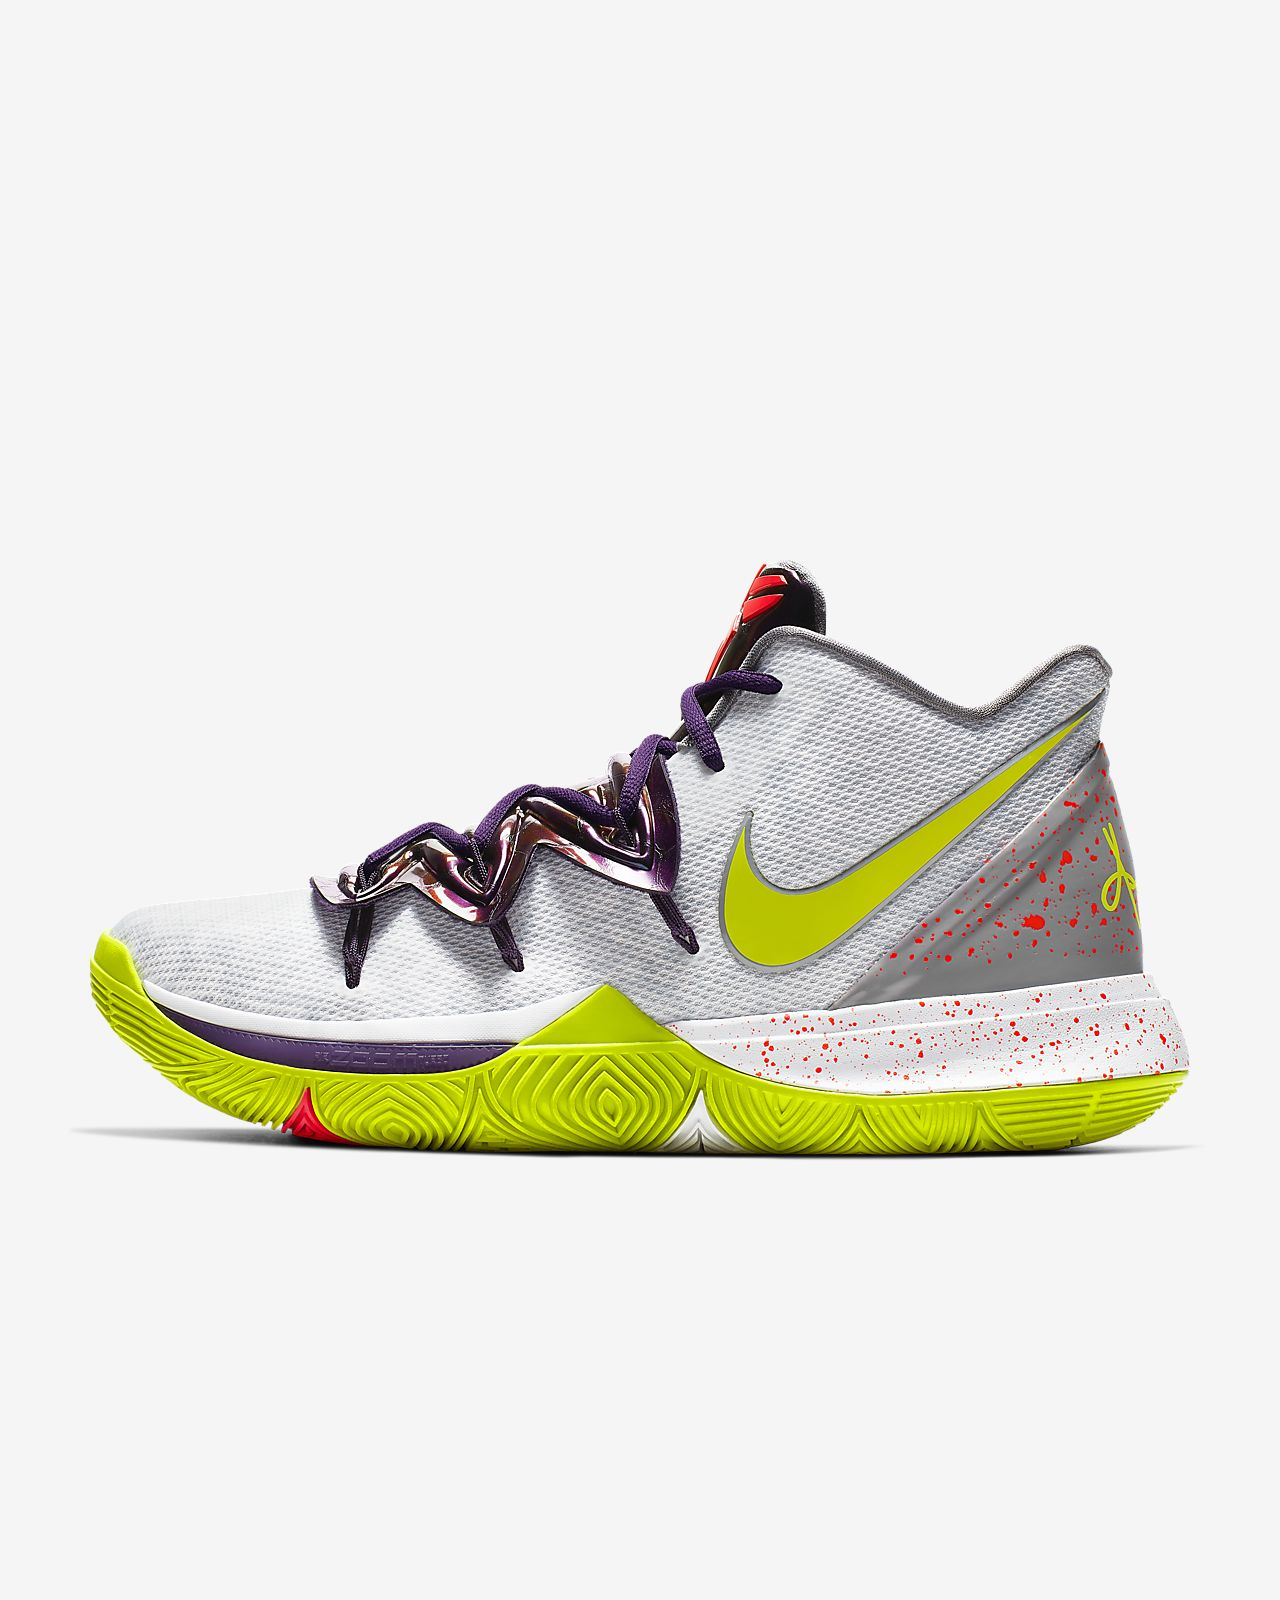 online store 692f4 2b02f Shoe. Kyrie 5. RM 495. Low Resolution ...